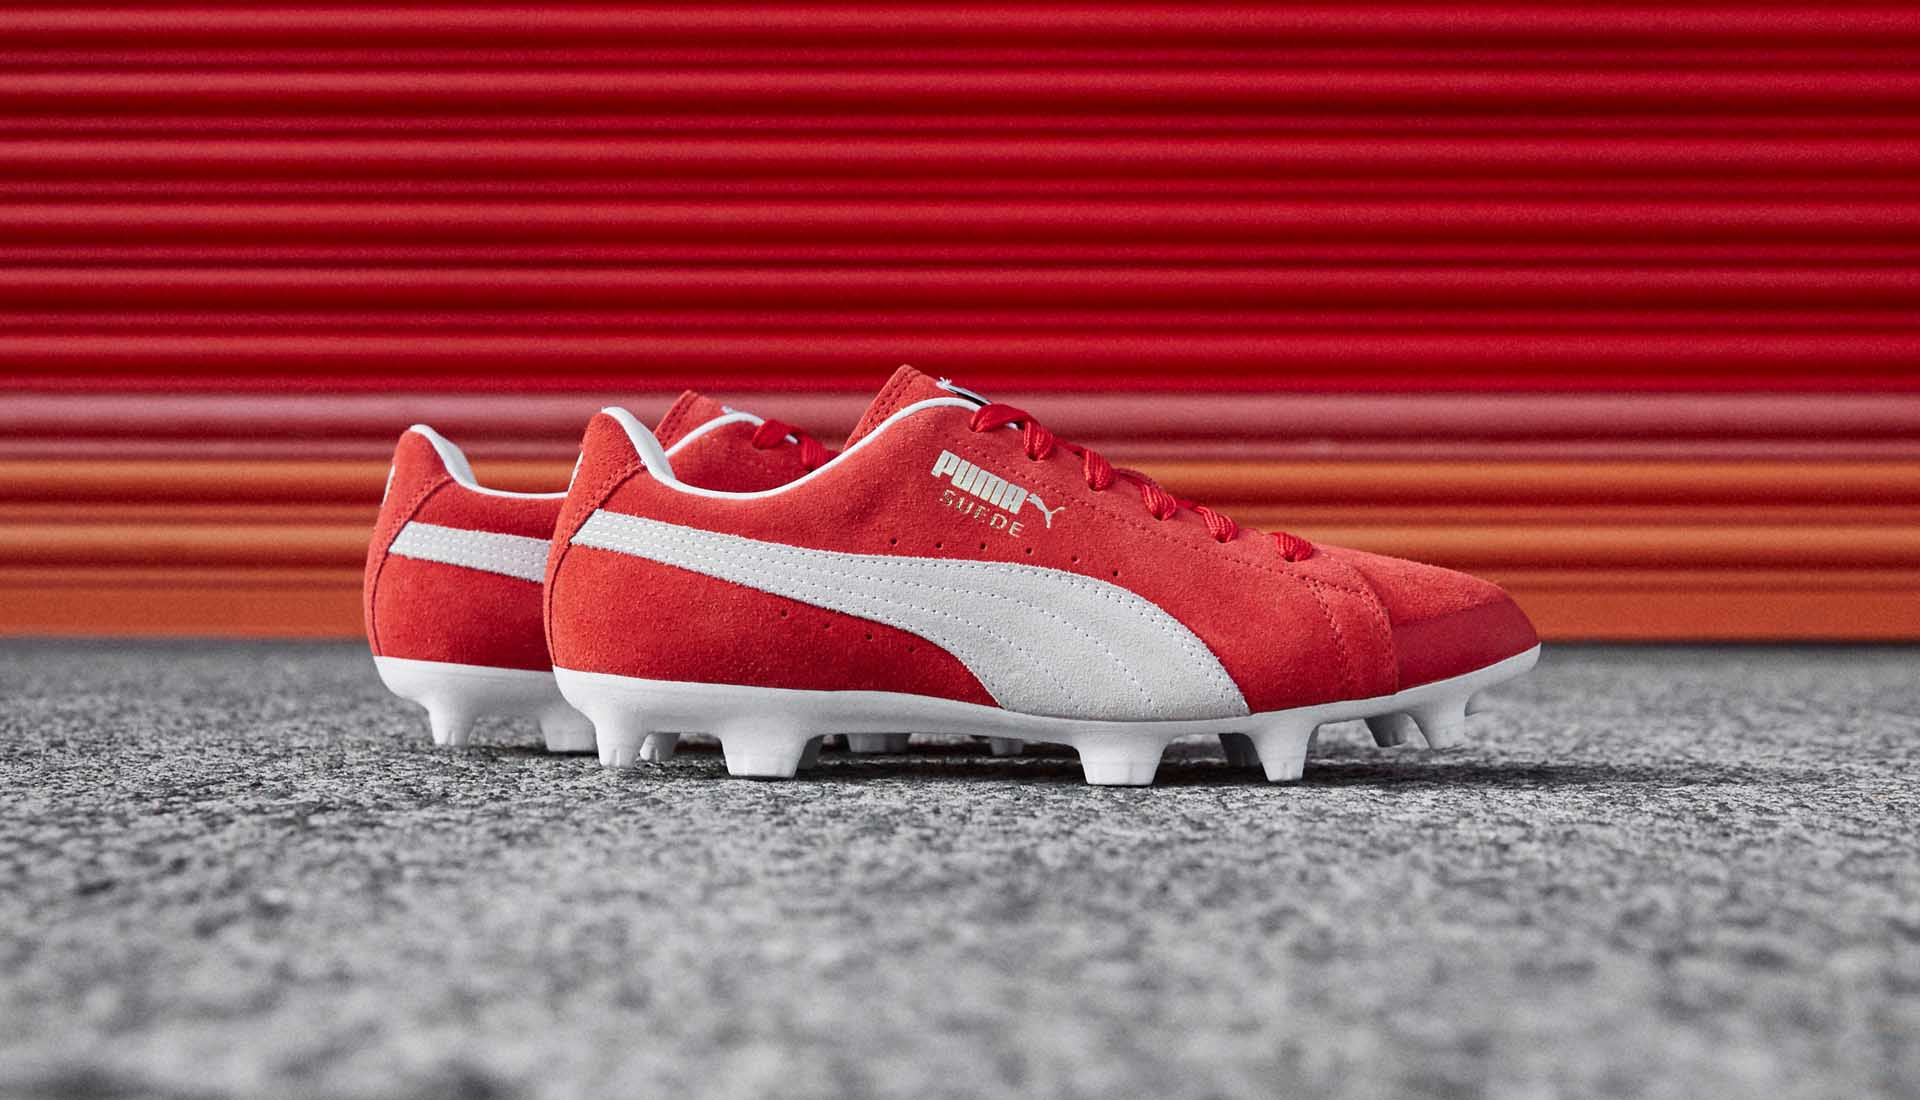 1843699ac91 PUMA Launch the FUTURE Suede Pack - SoccerBible